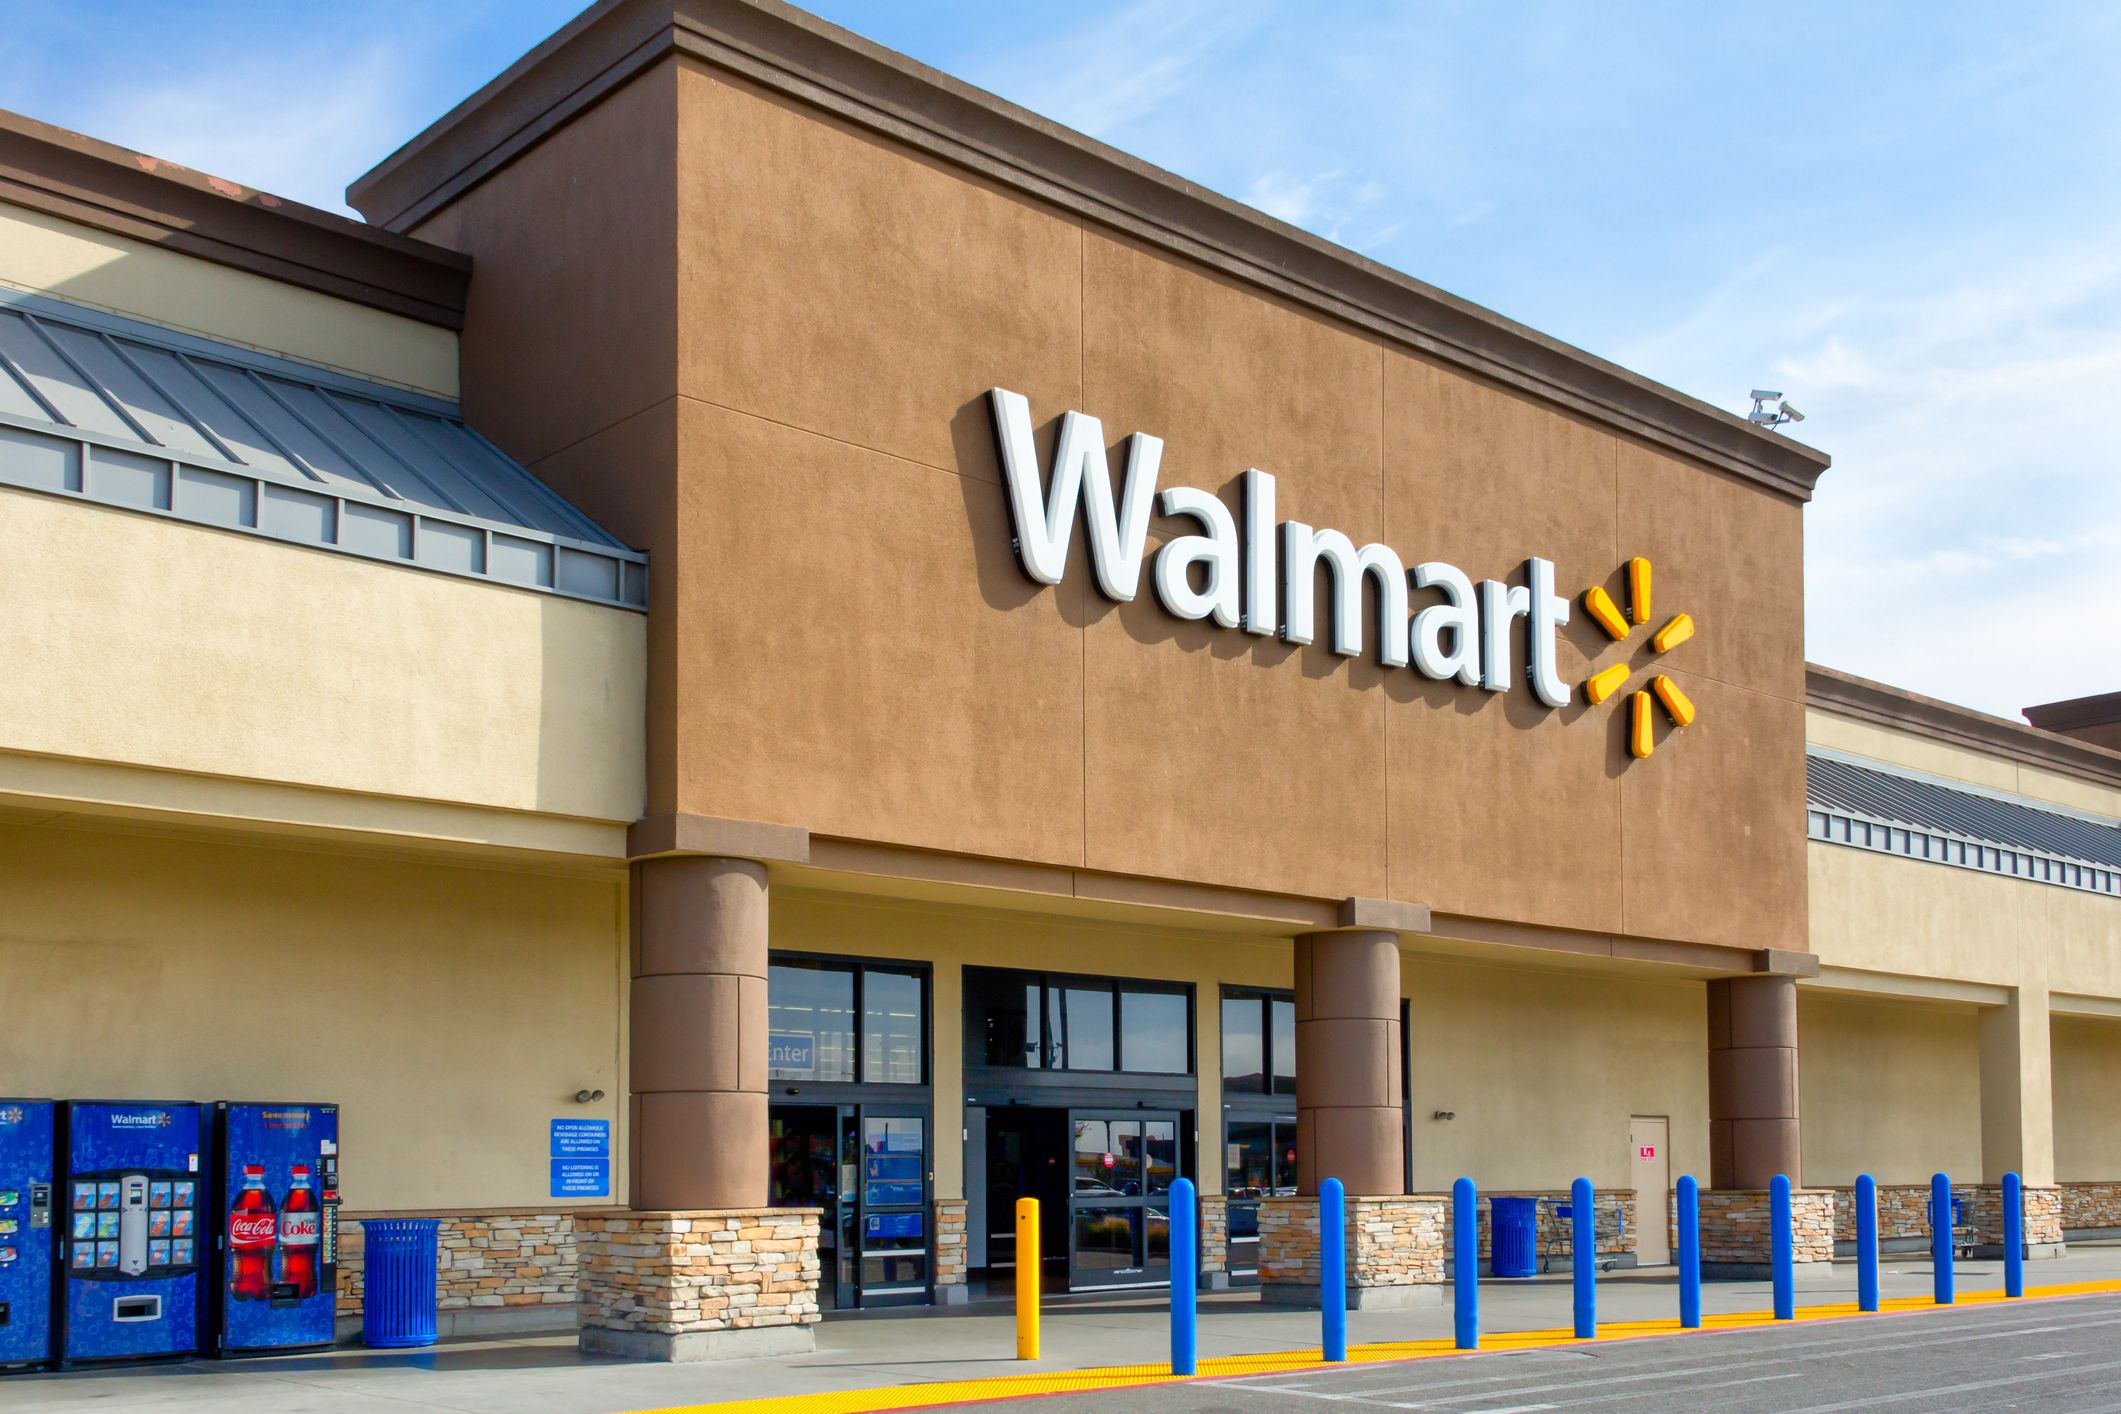 Walmart's App Offers Grocery Pickup Or Delivery—Here's How To Order